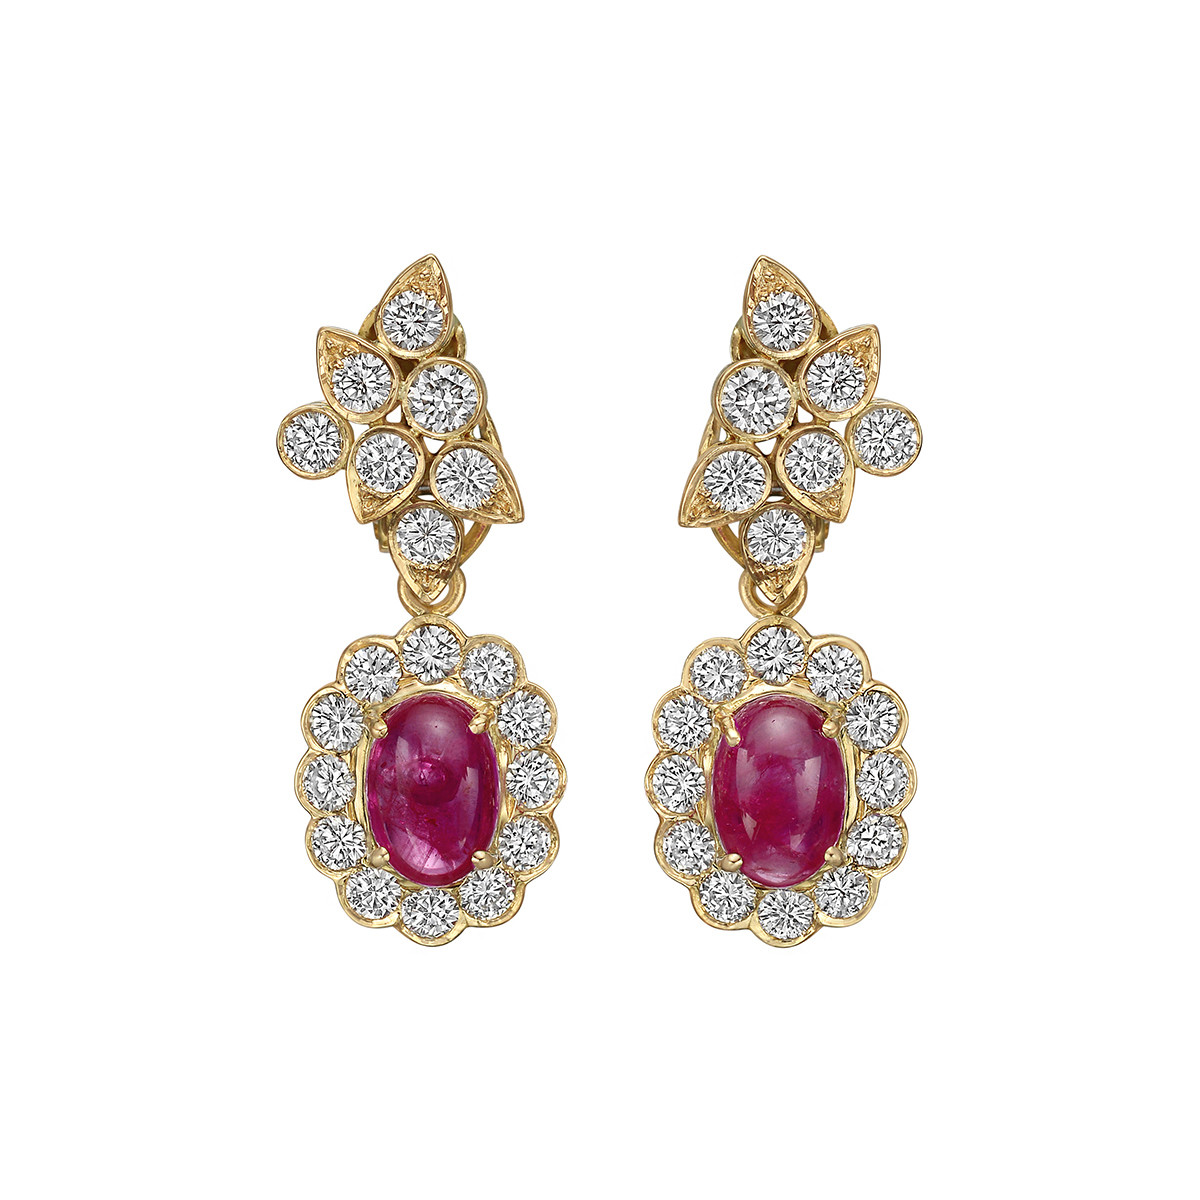 Cabochon Ruby & Diamond Pendant Earrings